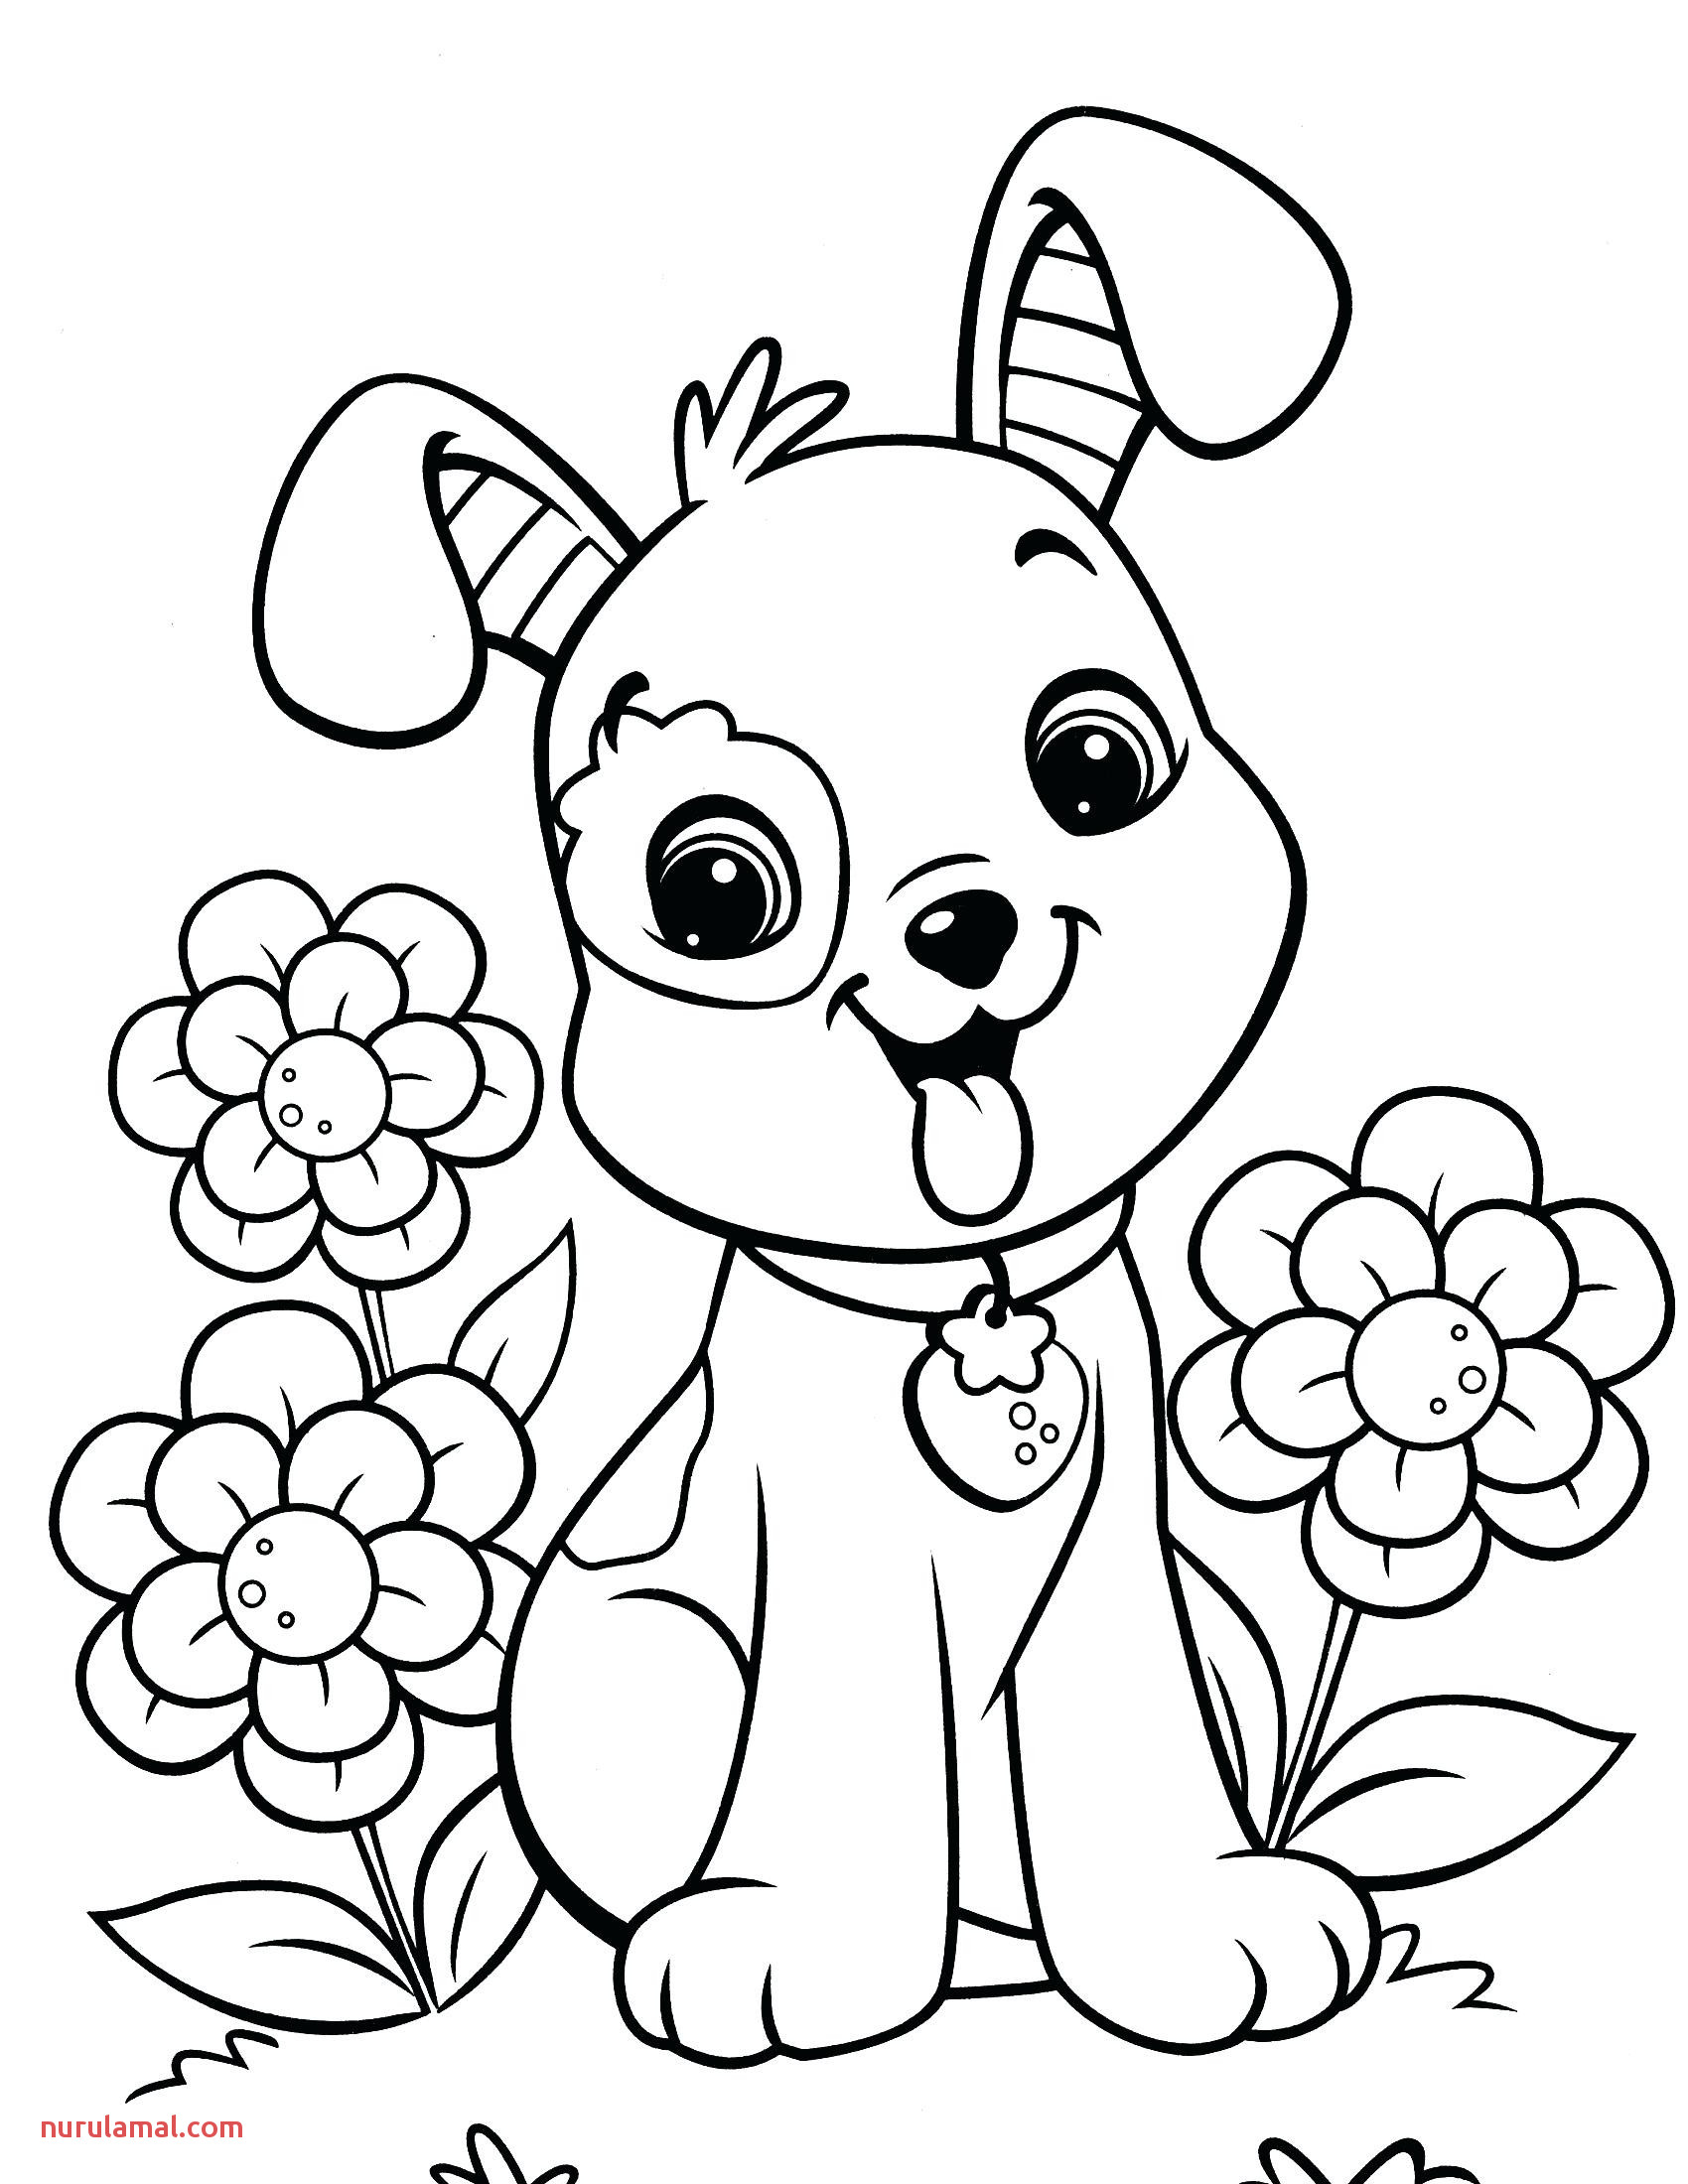 printable coloring sheets for girls luxury coloring pages realistic lion coloring cellarpaper fish sea of printable coloring sheets for girls